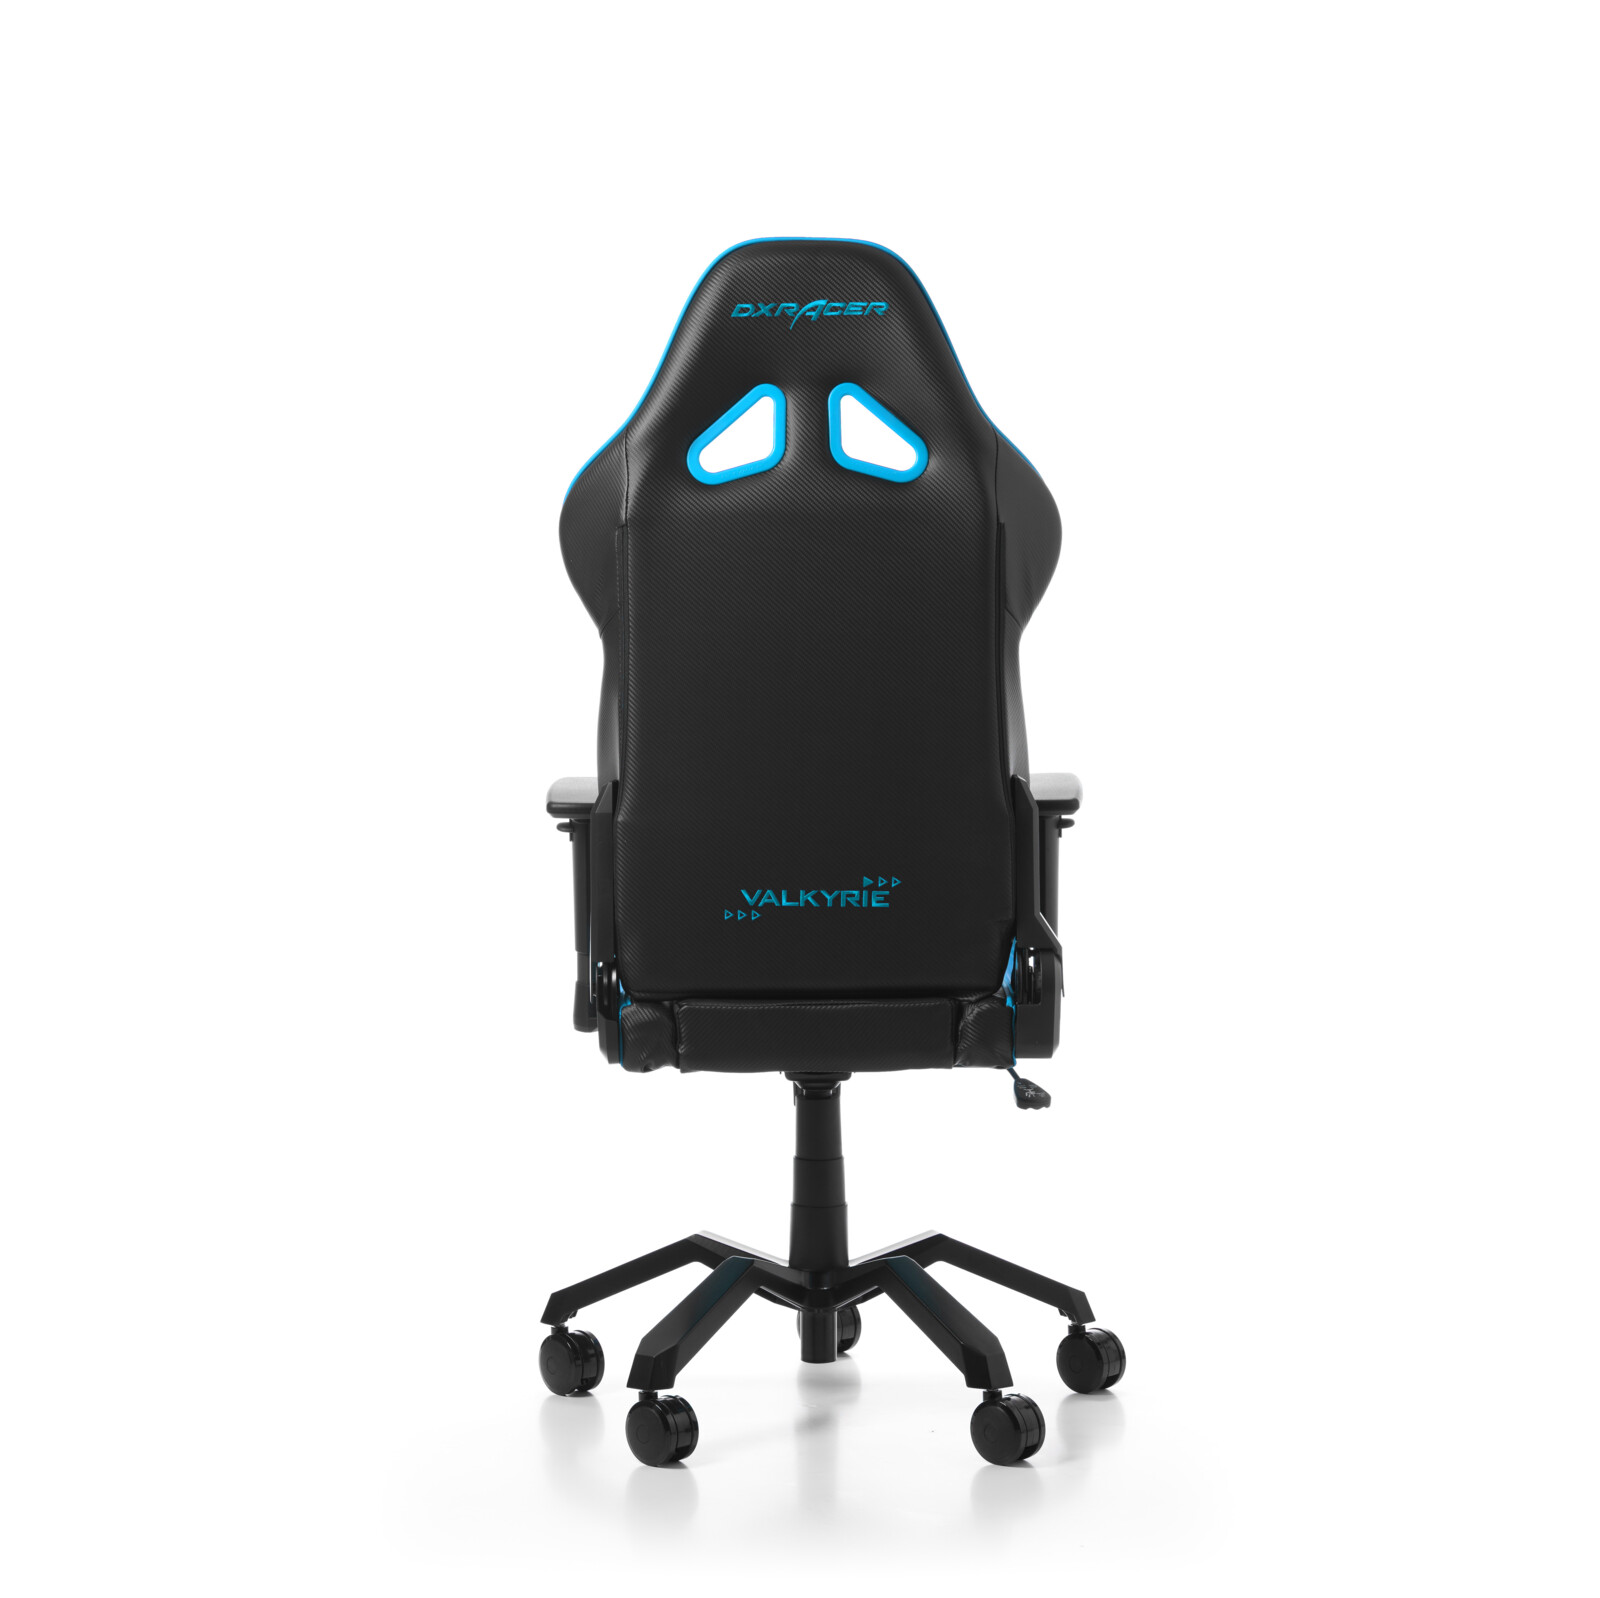 Gamer Sessel Media Markt Details Zu Dxracer Valkyrie V03 Gaming Chair Black Blue Gaming Stuhl Schwarz Blau